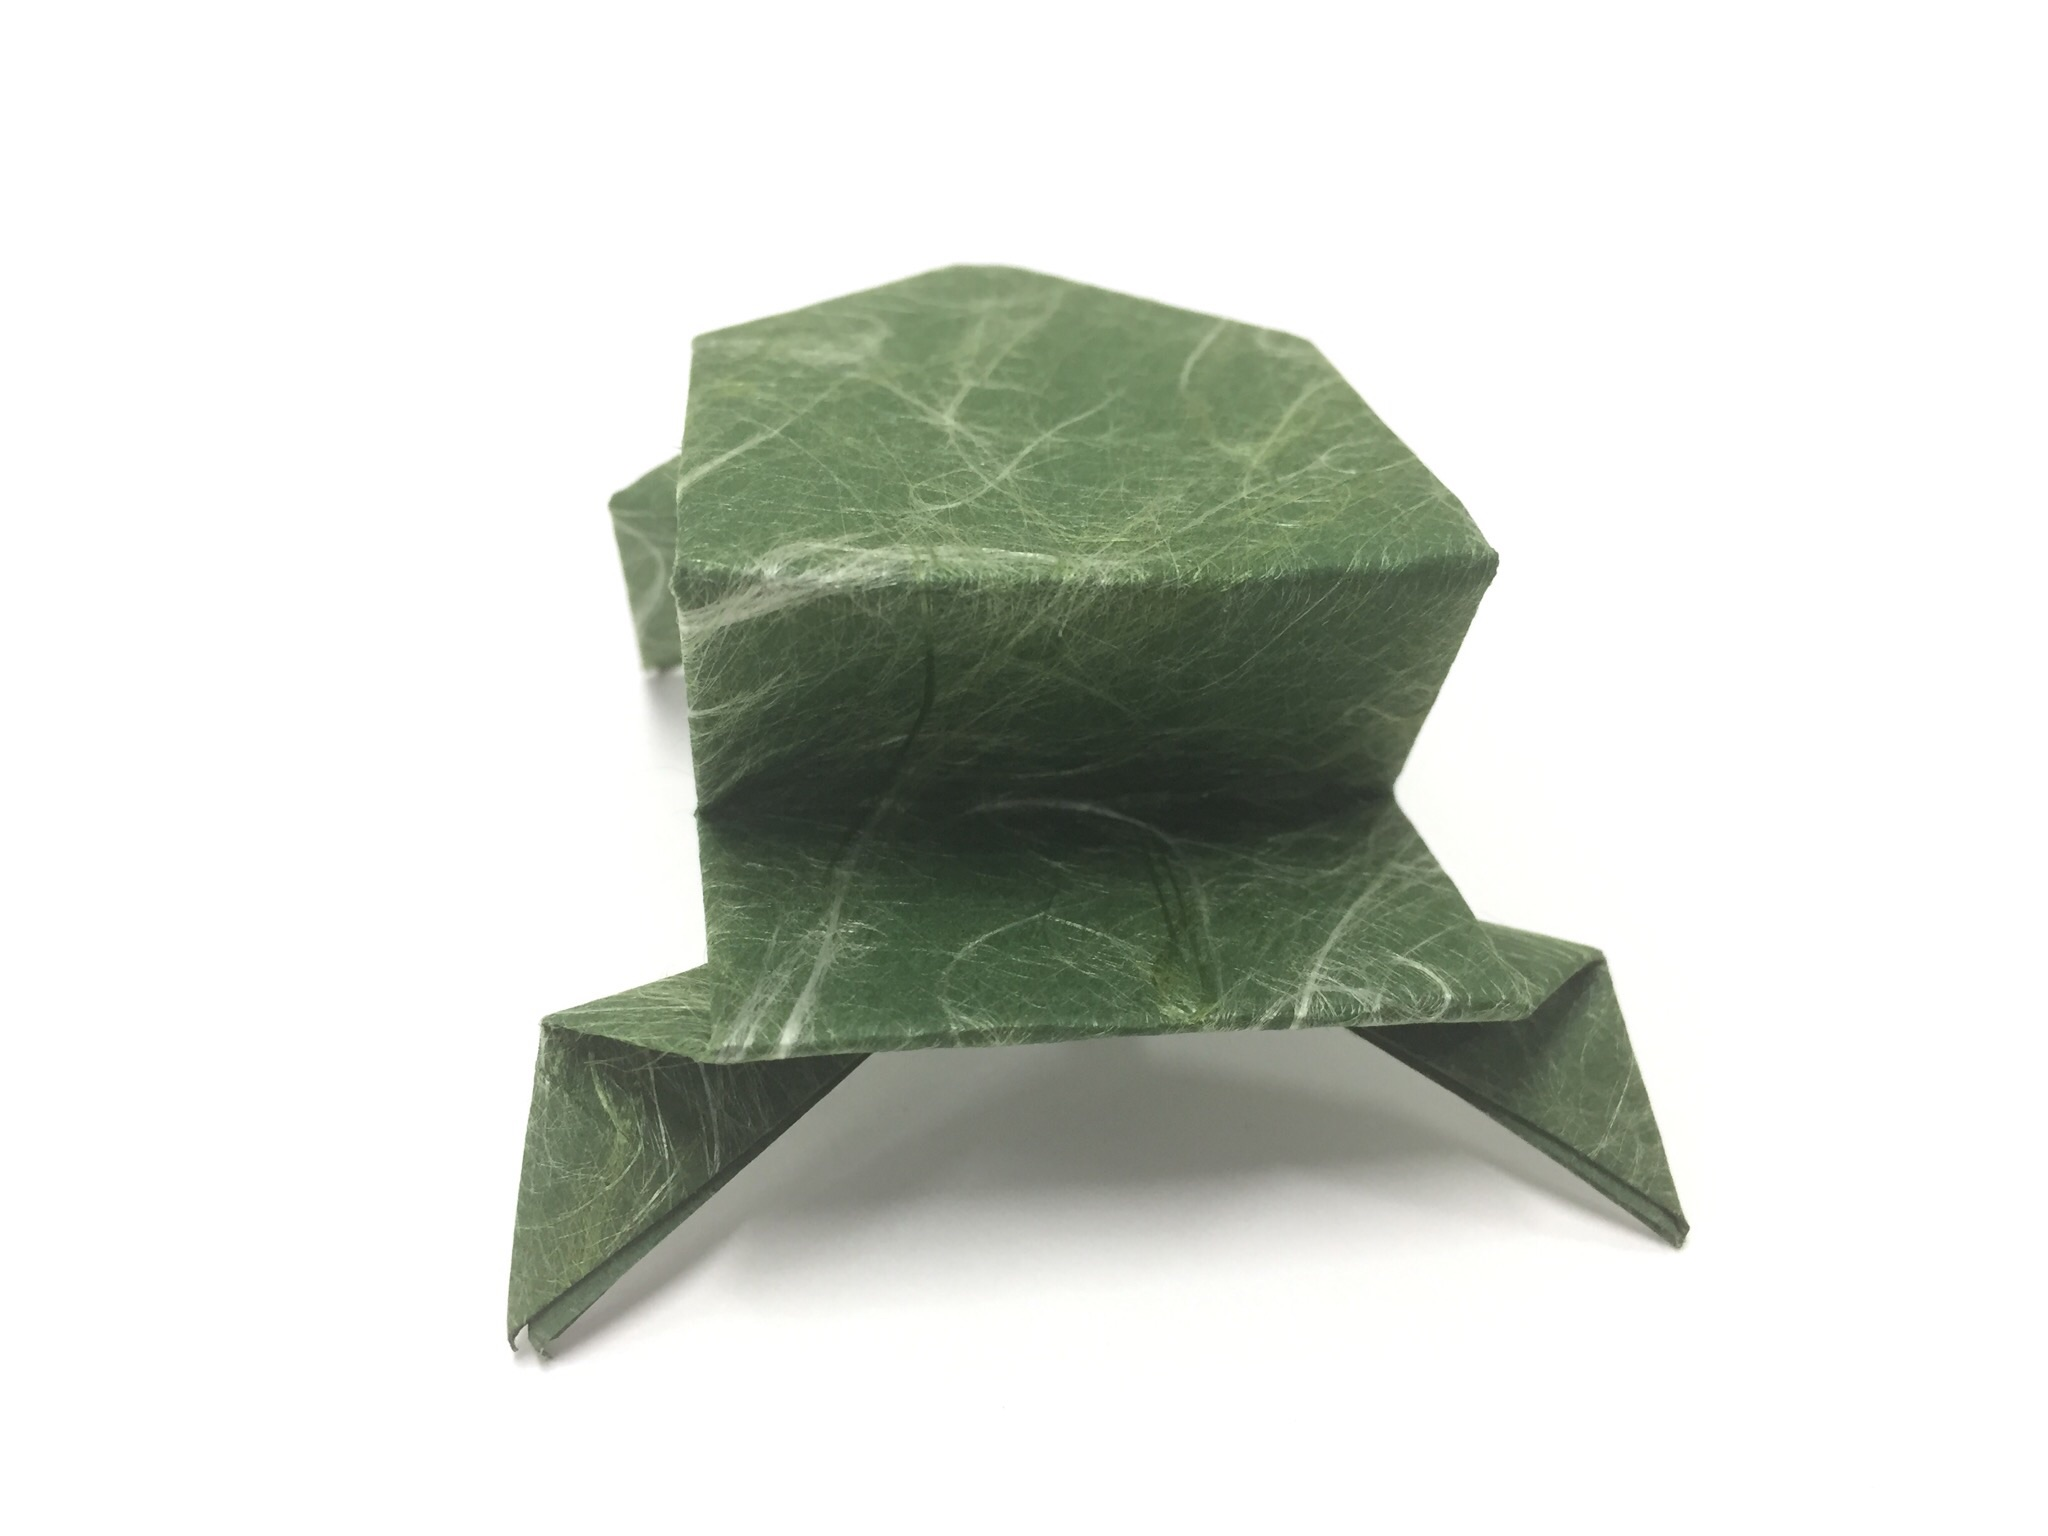 You just learned how to make an origami frog!